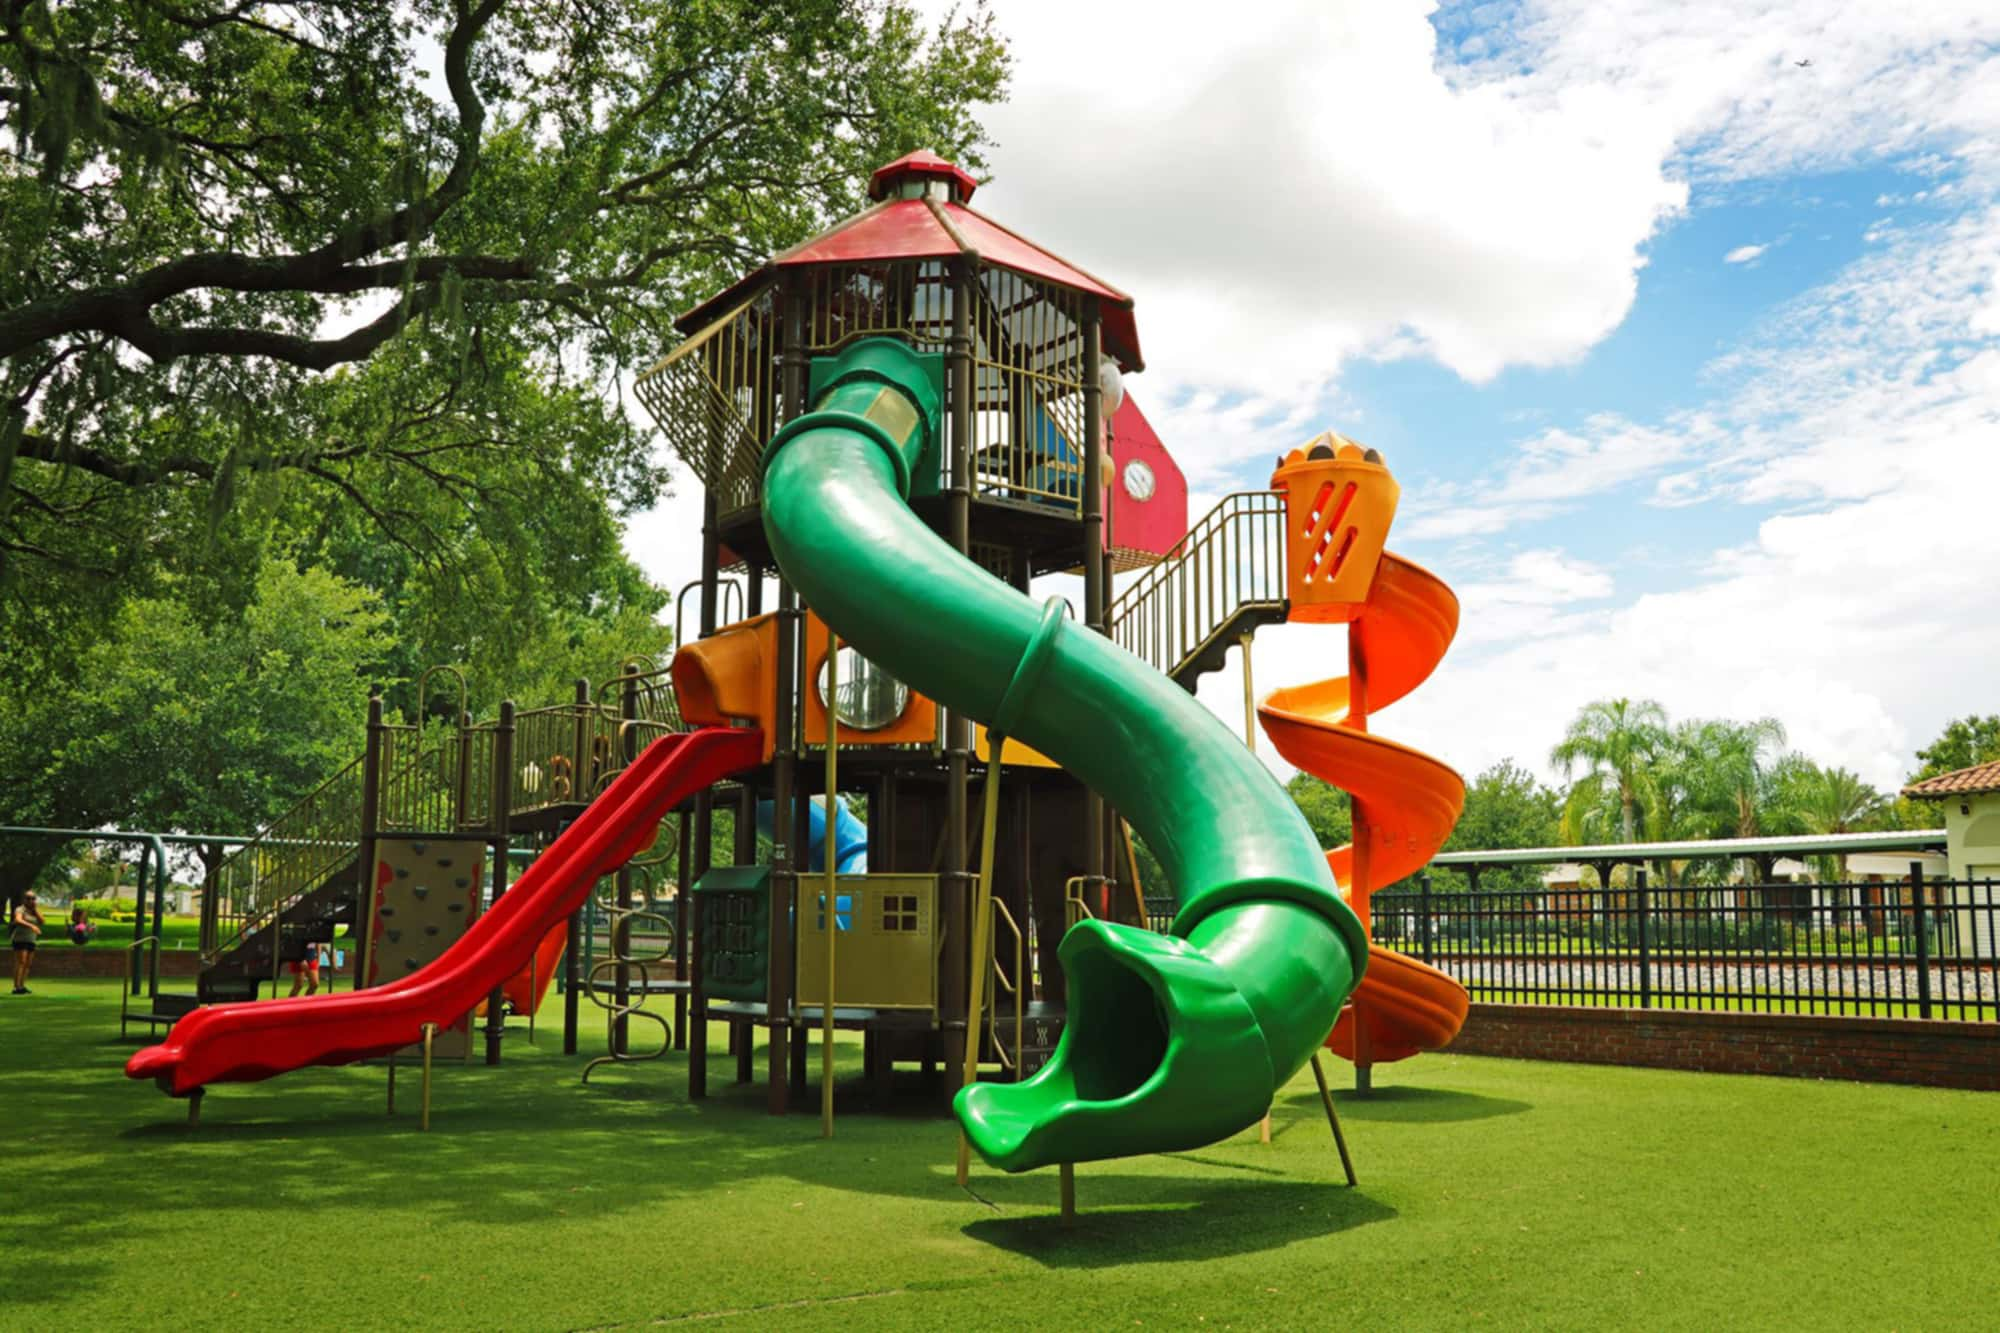 Playground equipment, including 3 slides and artificial grass at Downtown Auburndale, FL's City Park